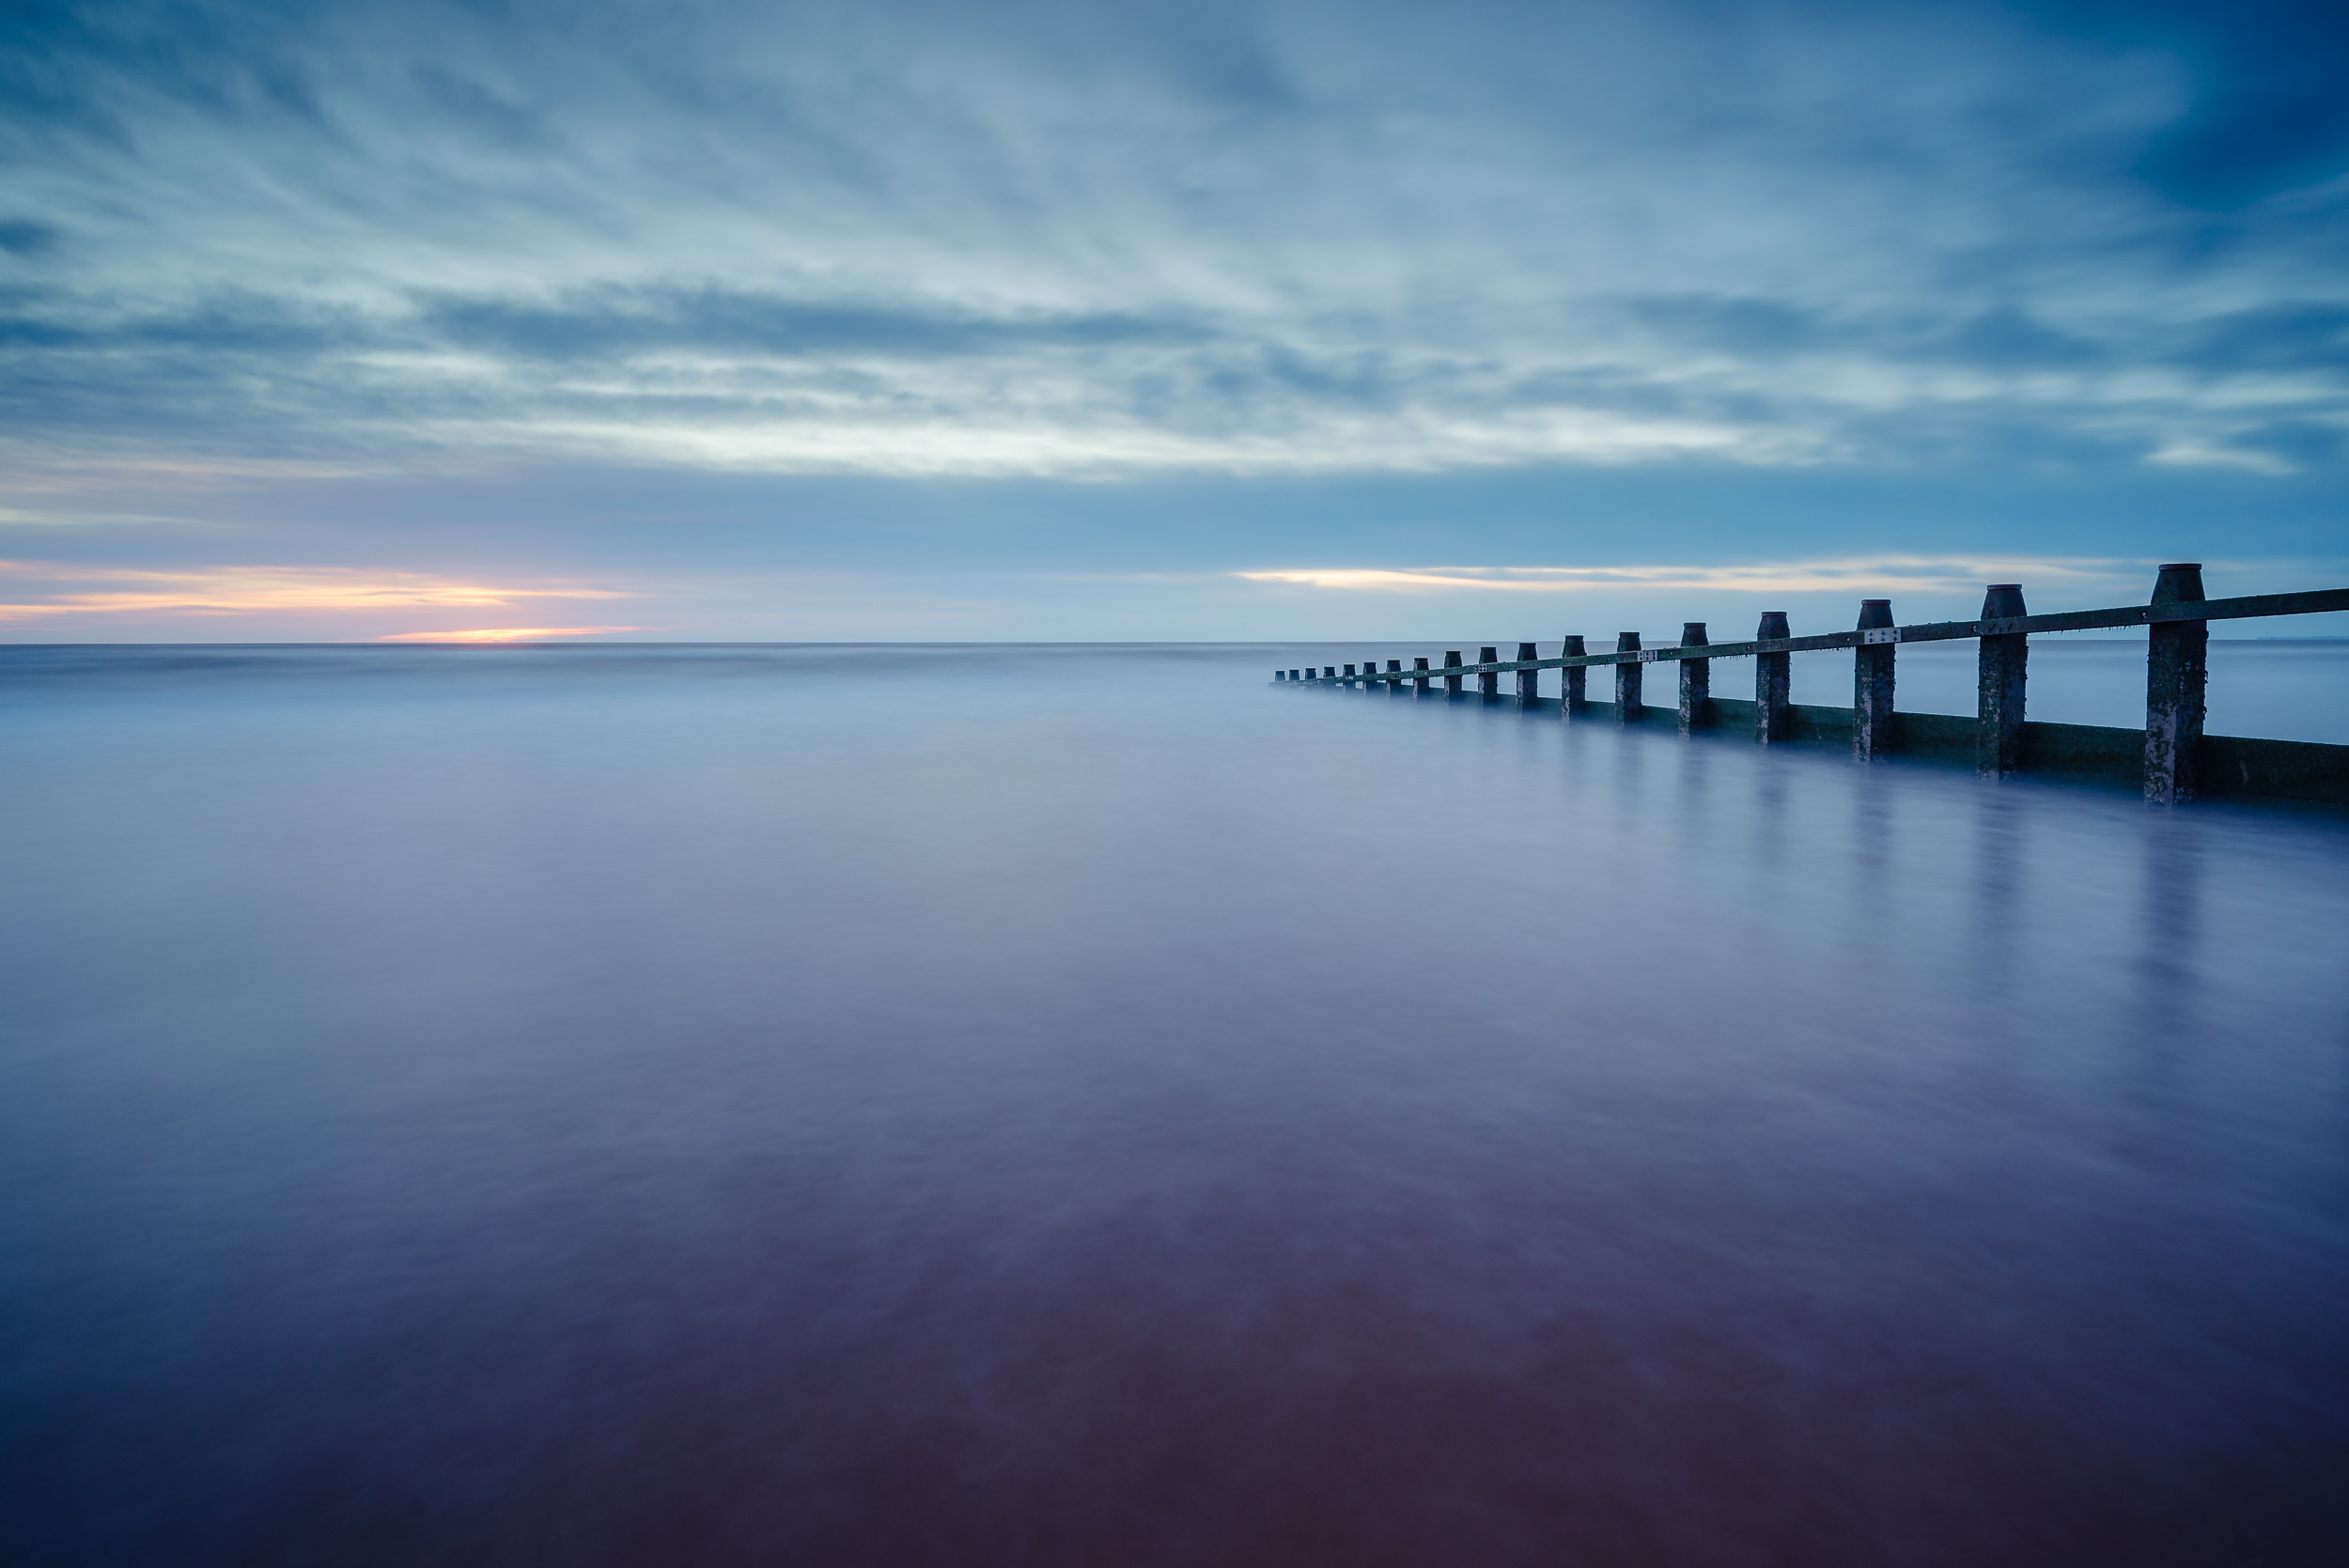 When I visited Dawlish Warren last week it was probably at the lowest tide I had seen so I had access to shoot some of the groynes I've never been able to access before.